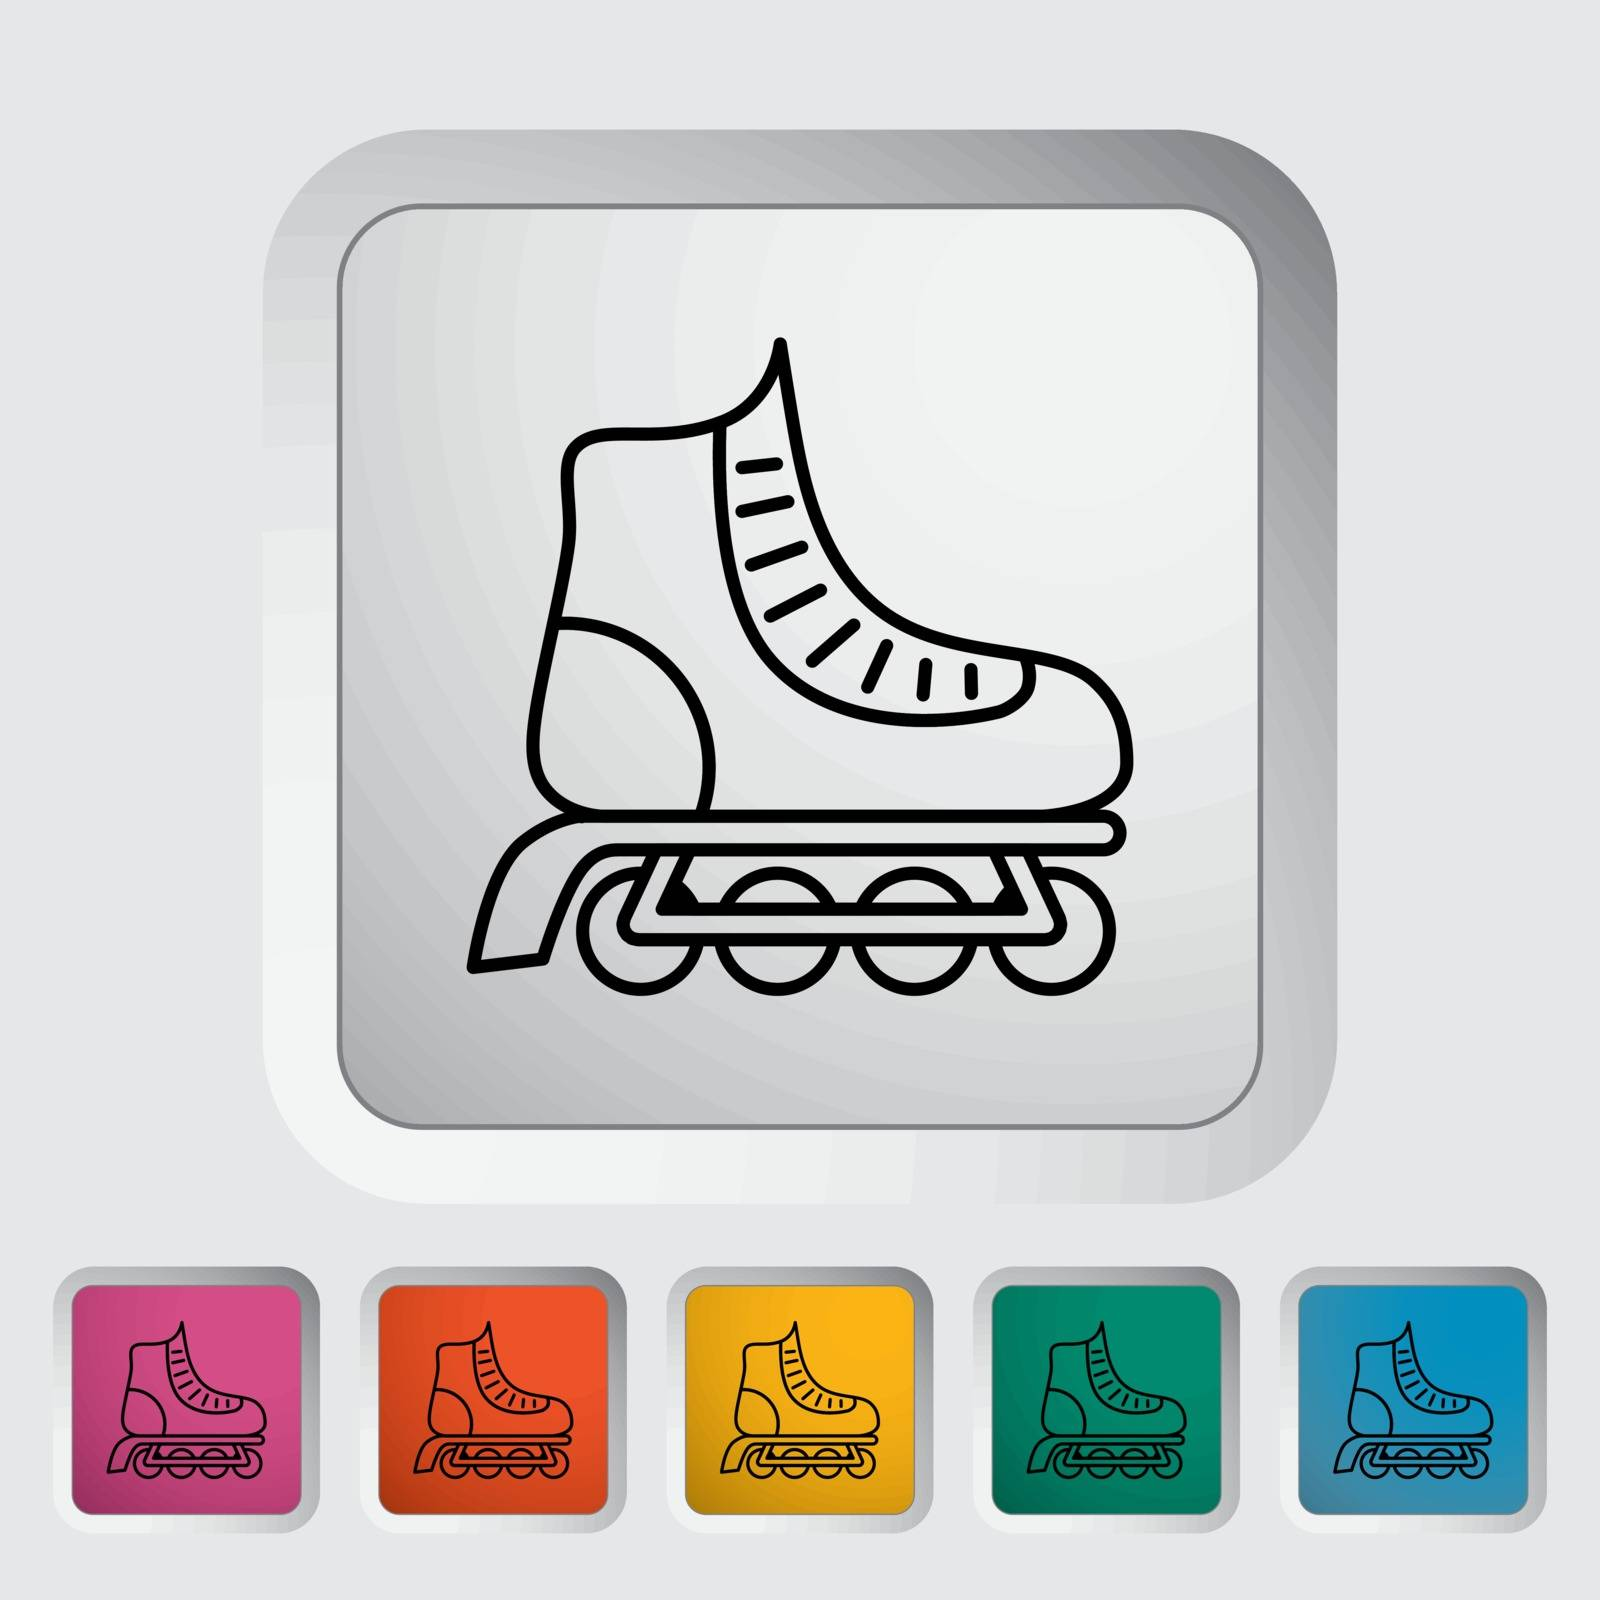 Roller skate thin line flat vector related icon set for web and mobile applications. It can be used as - pictogram, icon, infographic element. Vector Illustration.